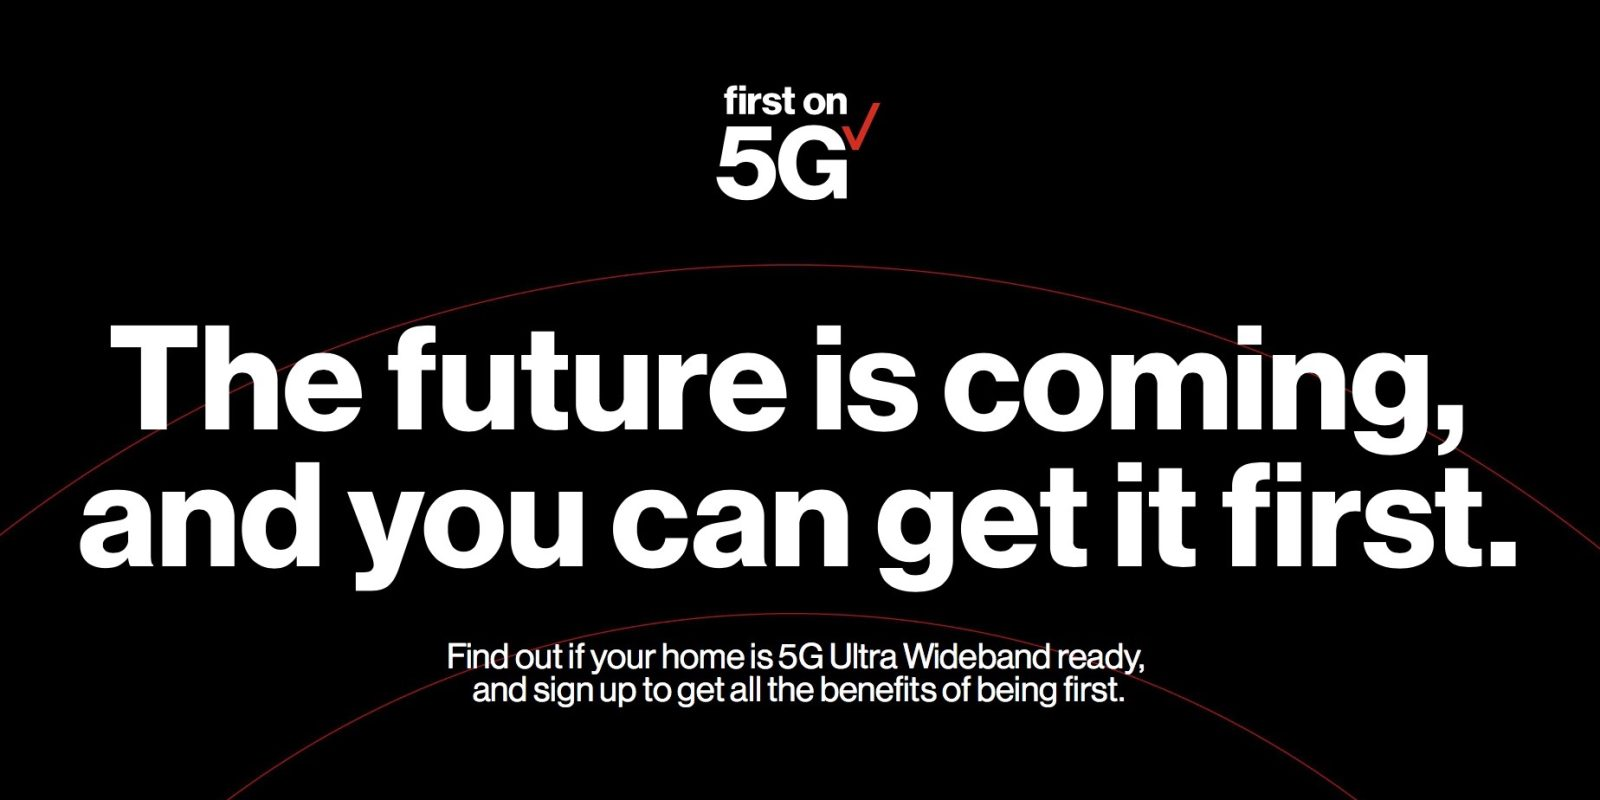 Verizon Rolling Out 5g Home Internet Service With Free Apple Tv In Select Cities Starting Today